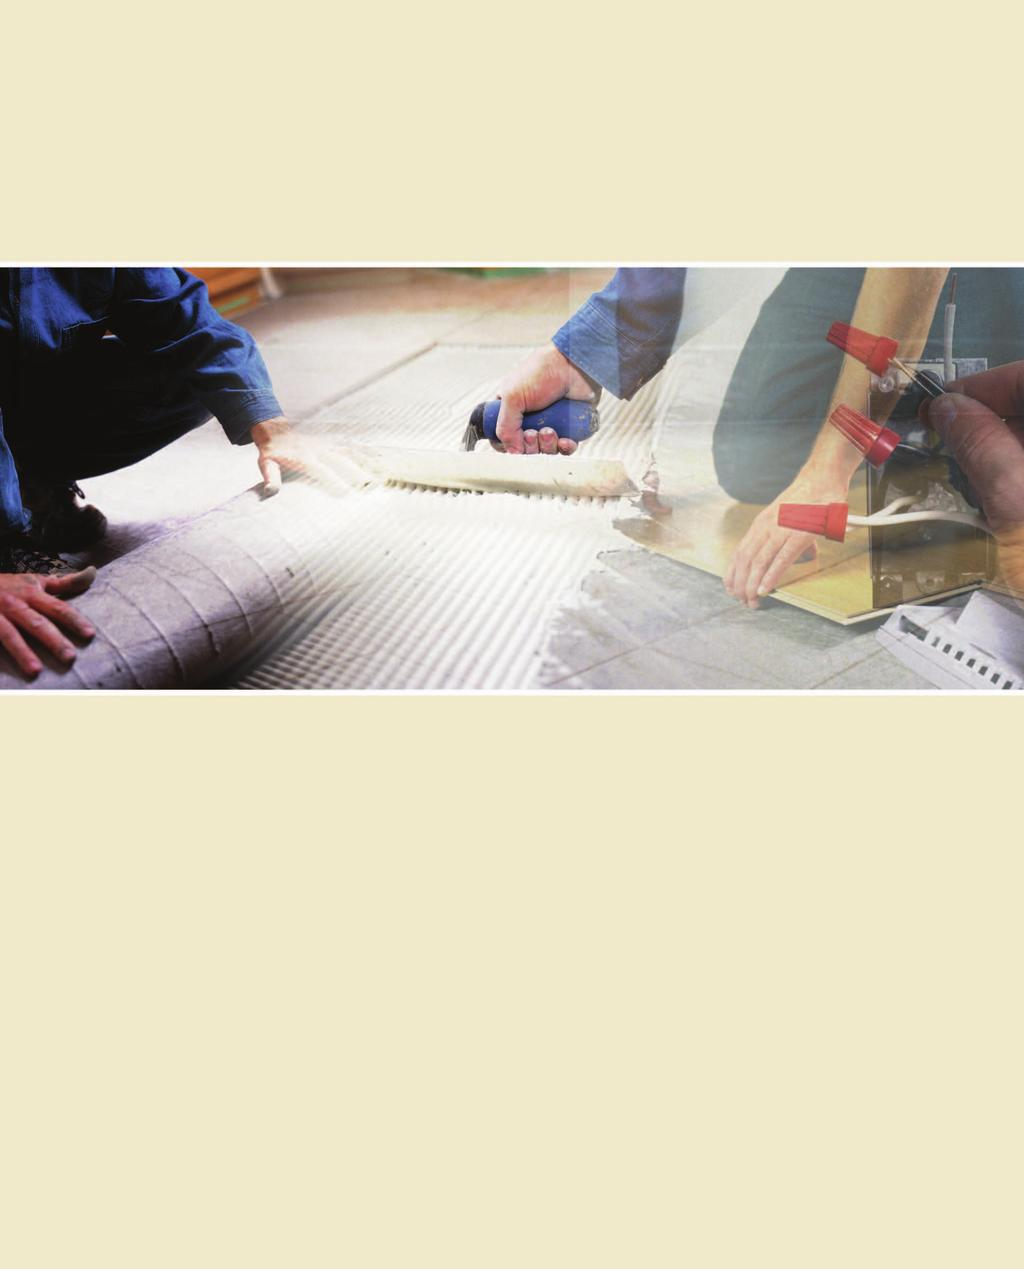 Nuheat Mat Installation Manual Electric Floor Heating System Wiring Instructions Includes Guidelines For Installing The